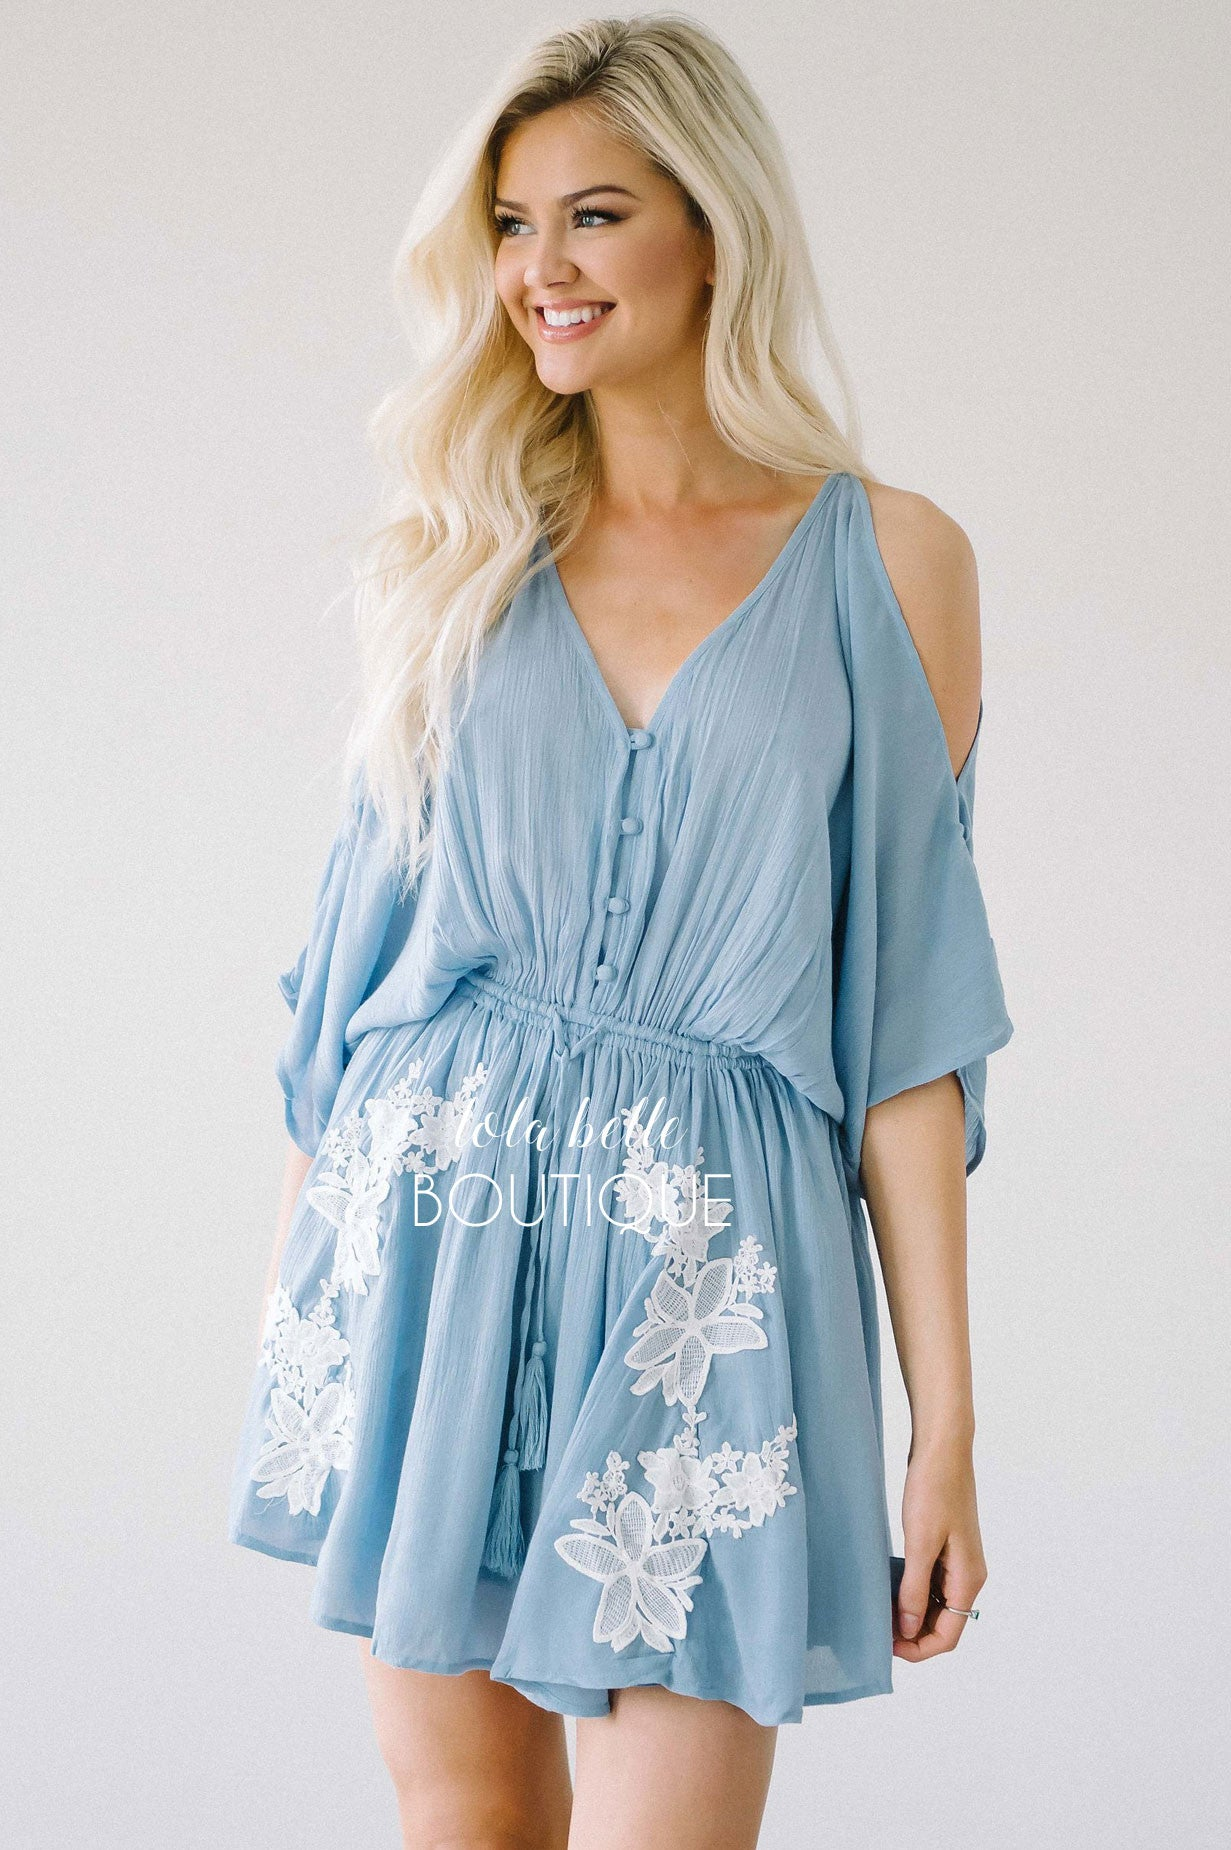 The Anabelle Dusty Blue Embroidery Romper